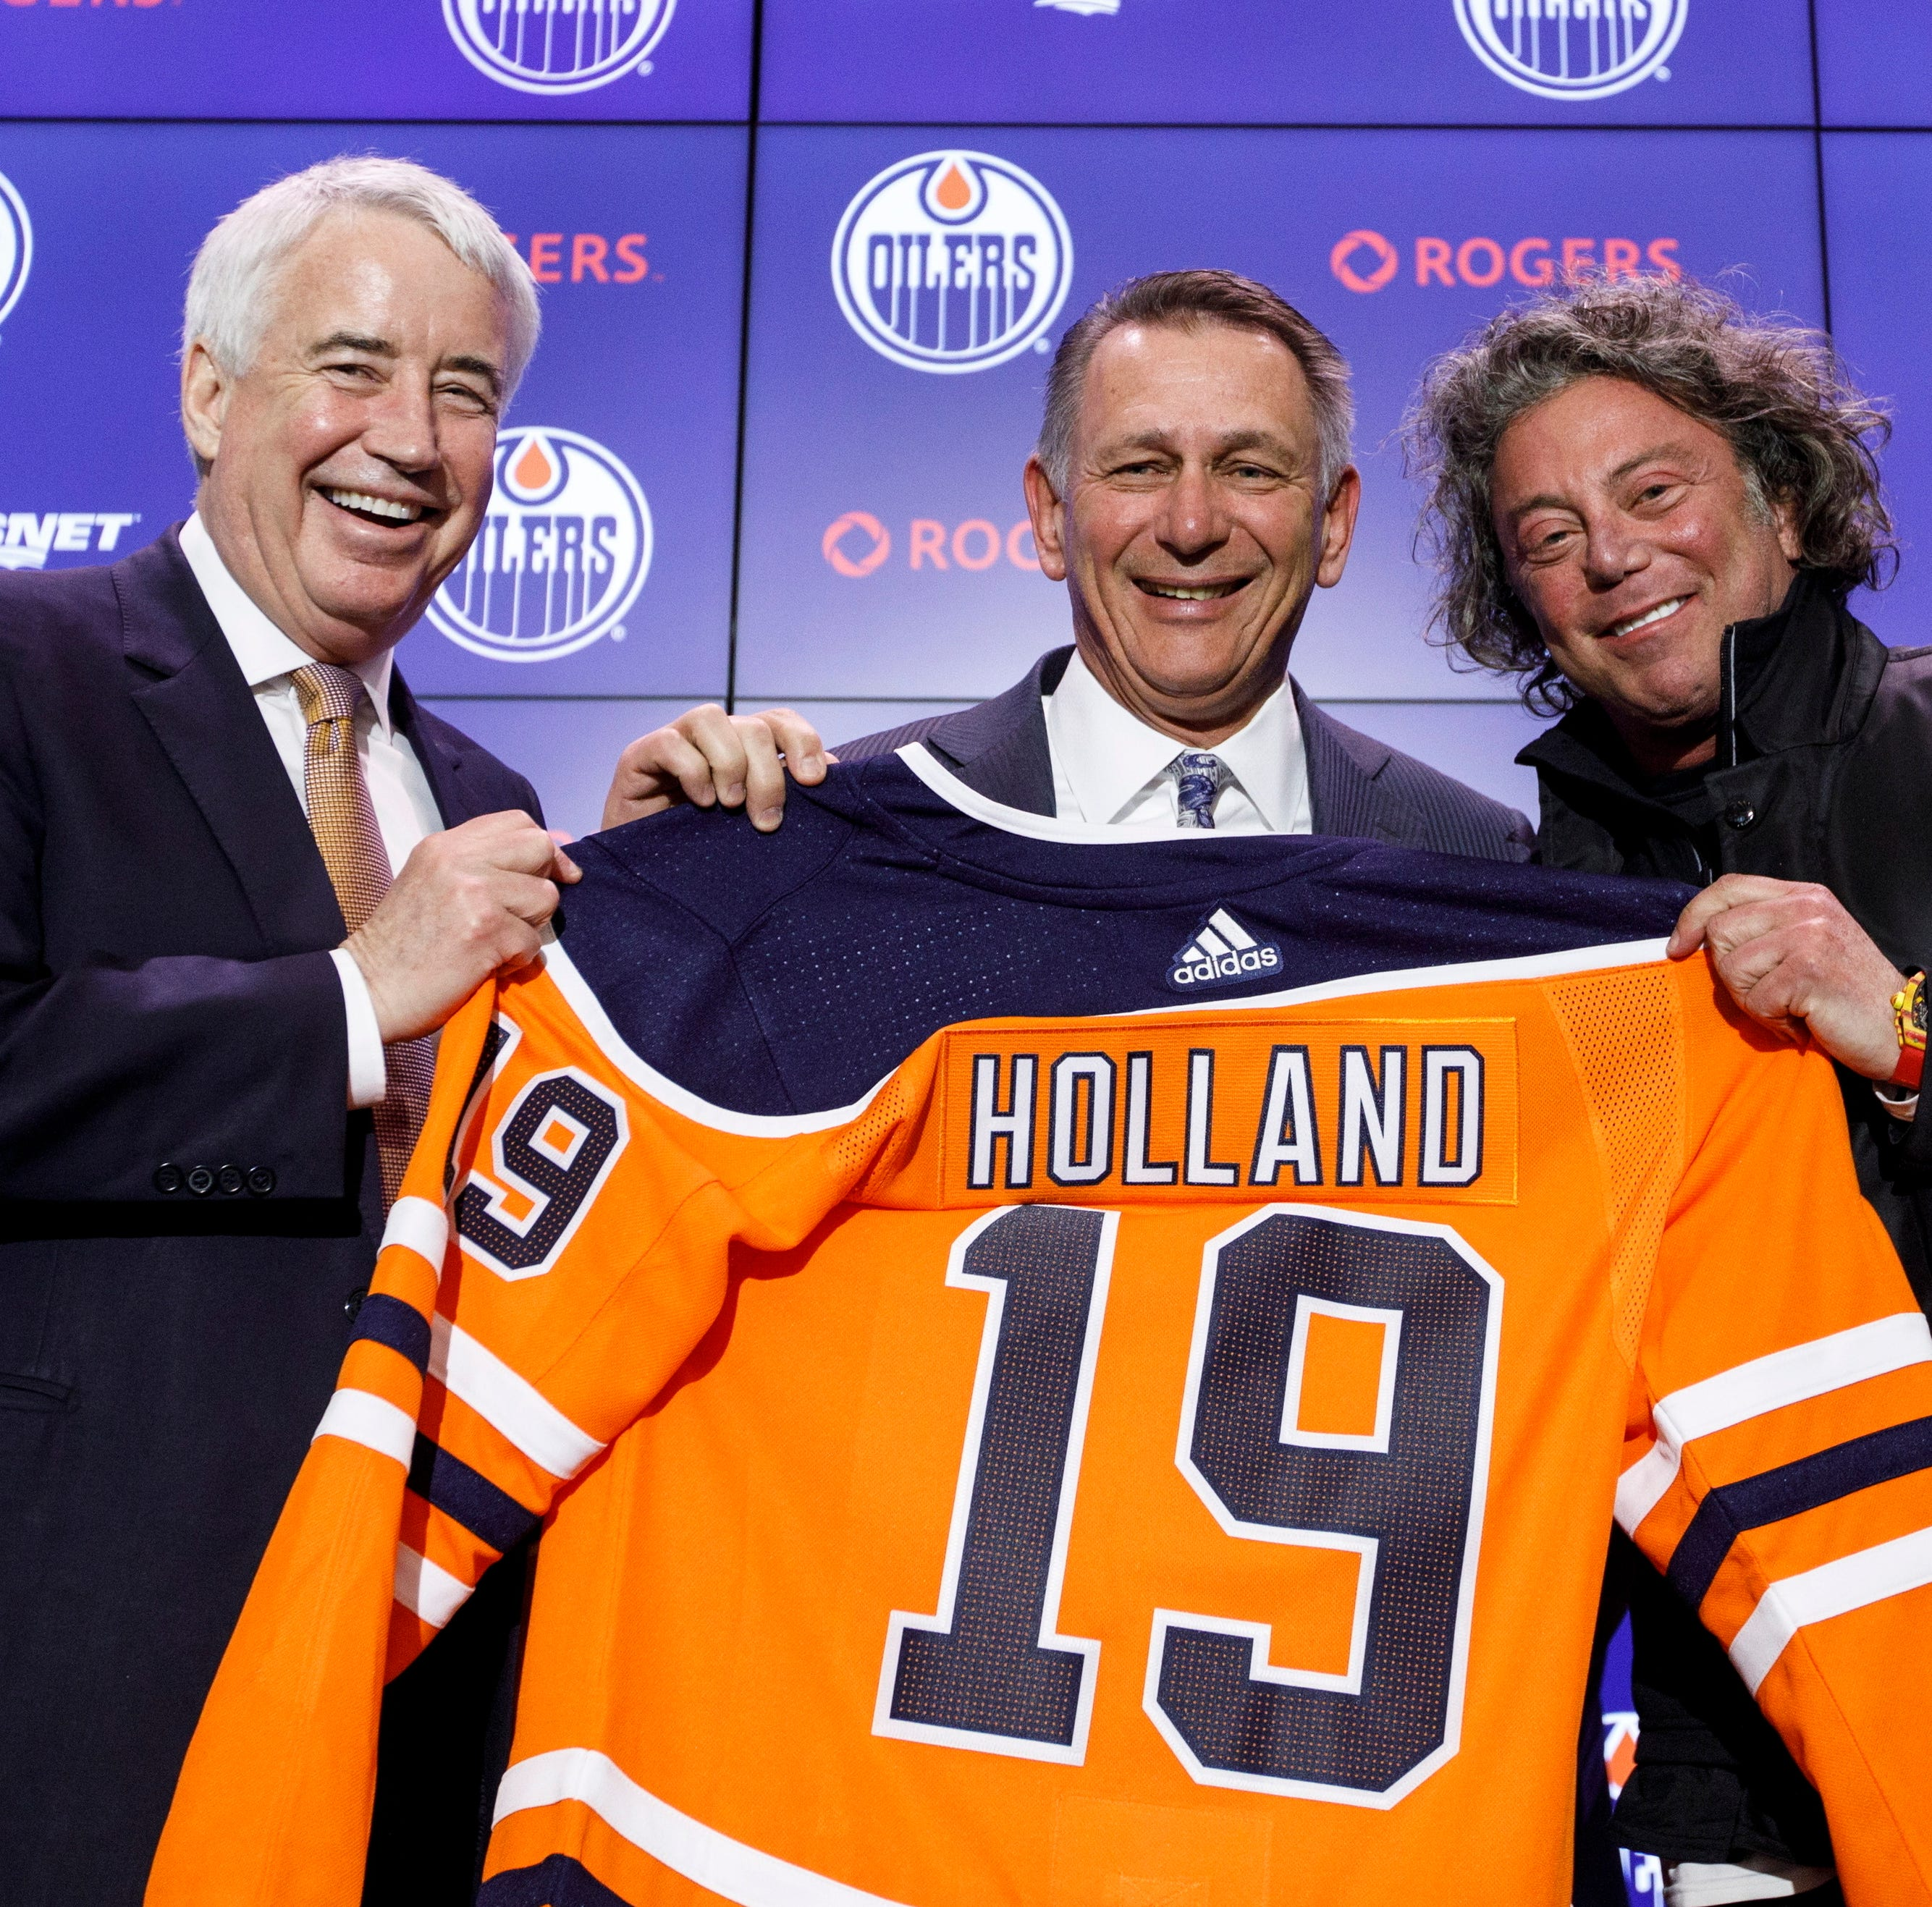 Why Ken Holland left the Detroit Red Wings for the Edmonton Oilers GM job